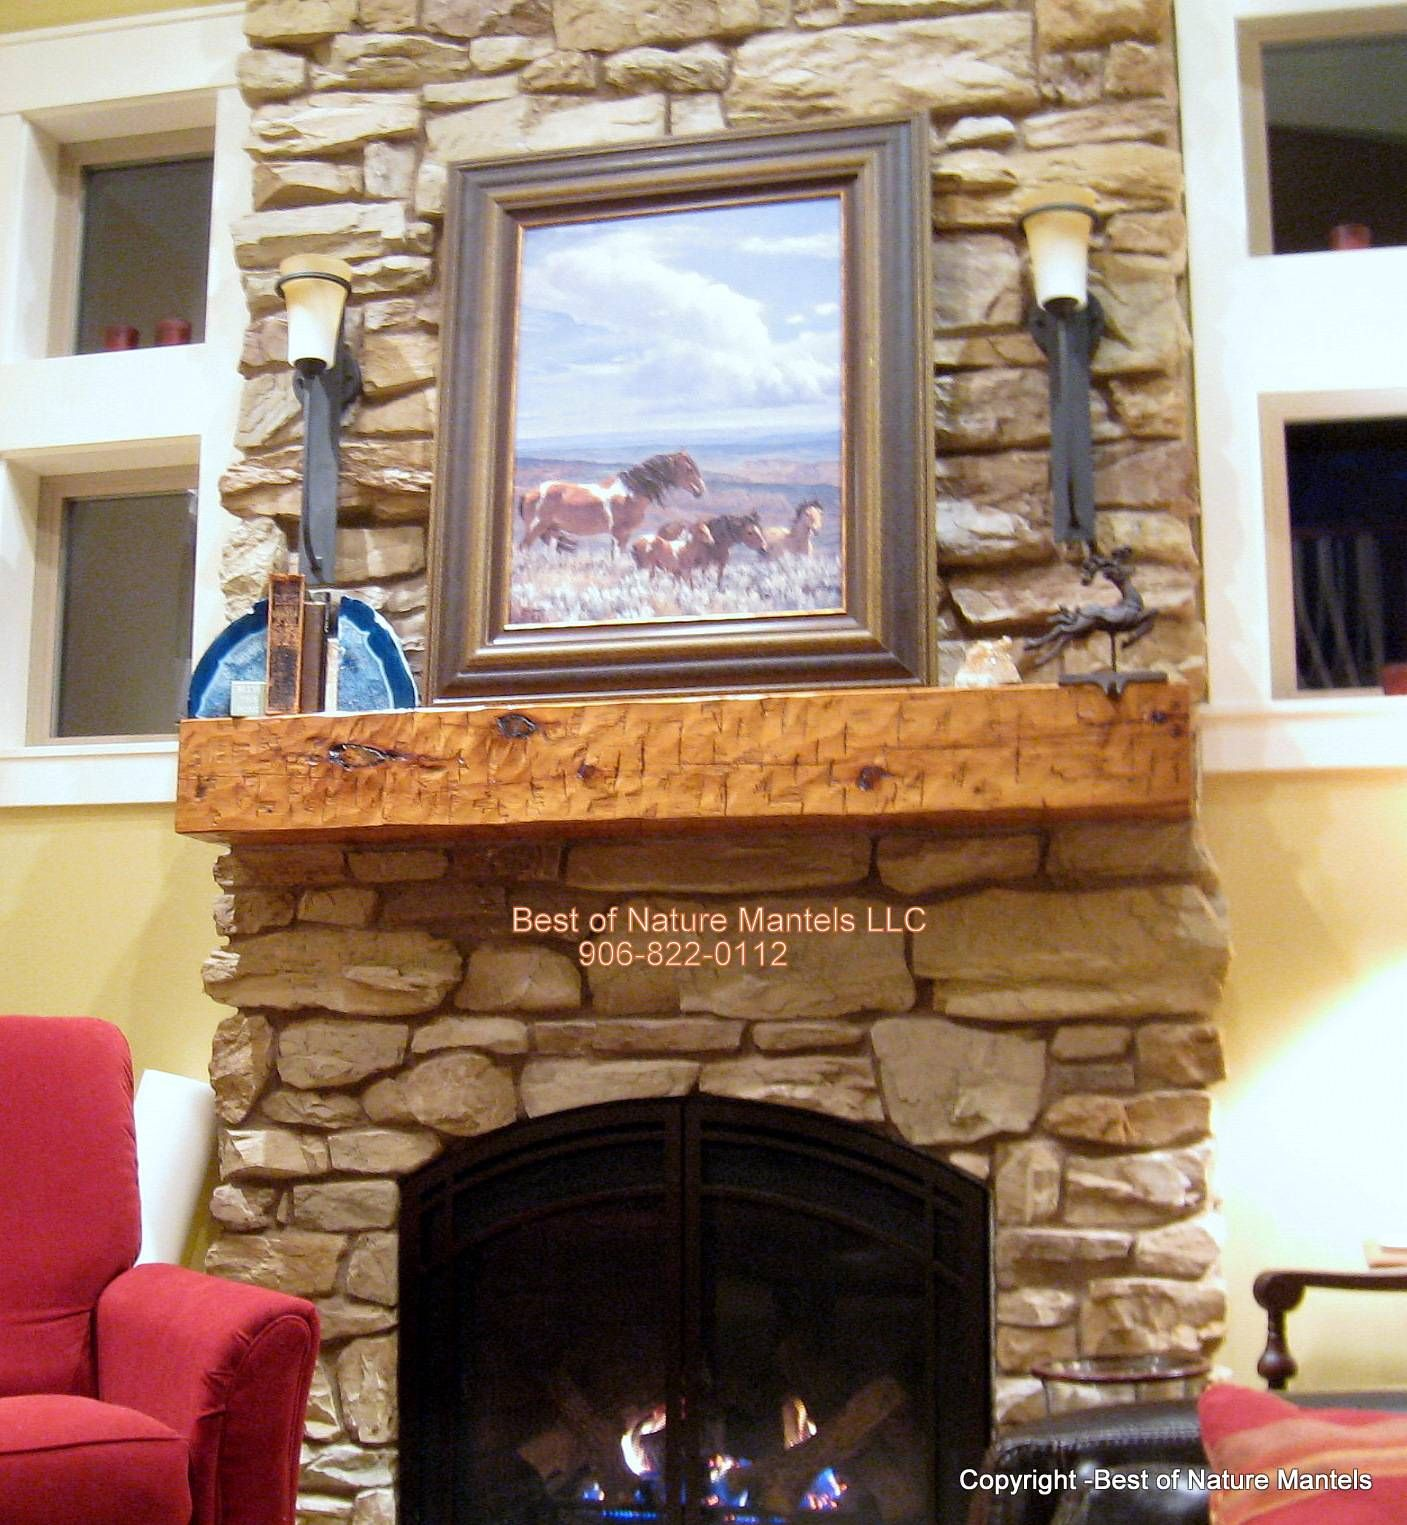 edge littlebranch live farm rustic wood mantels mantel fireplace